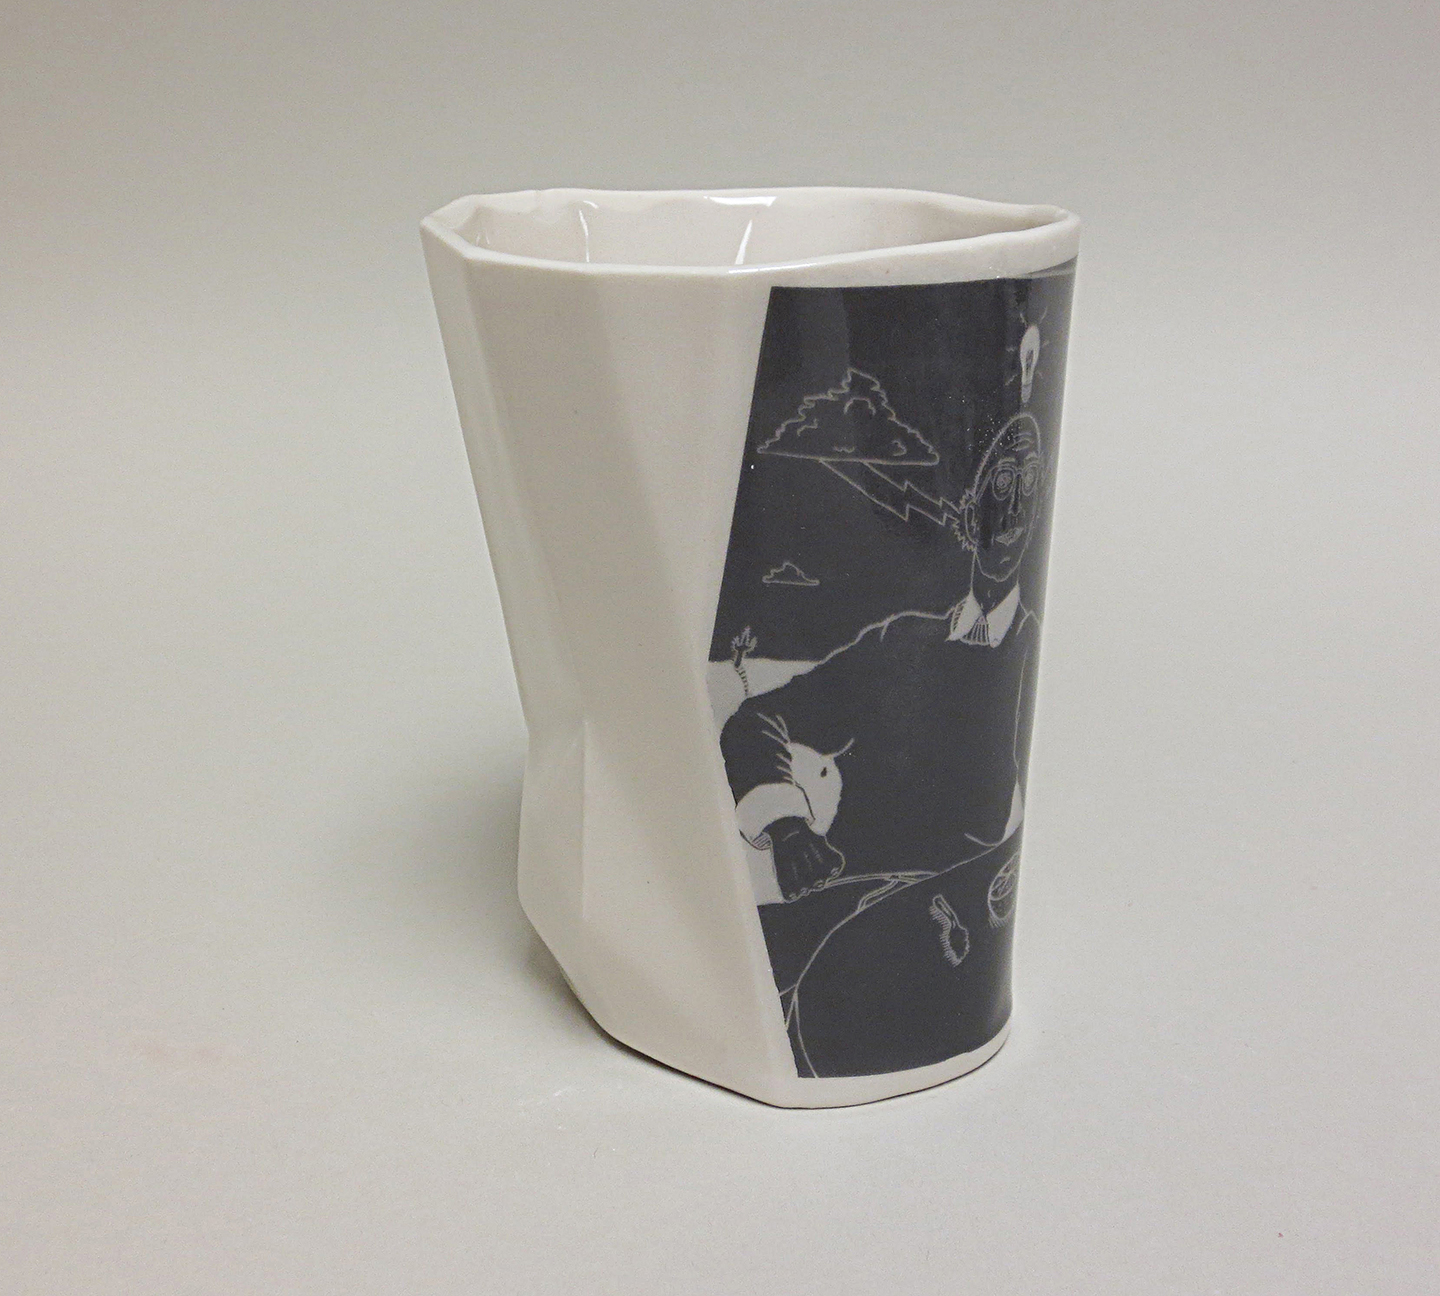 Collabo Cup 1st generation: Tim (left view)